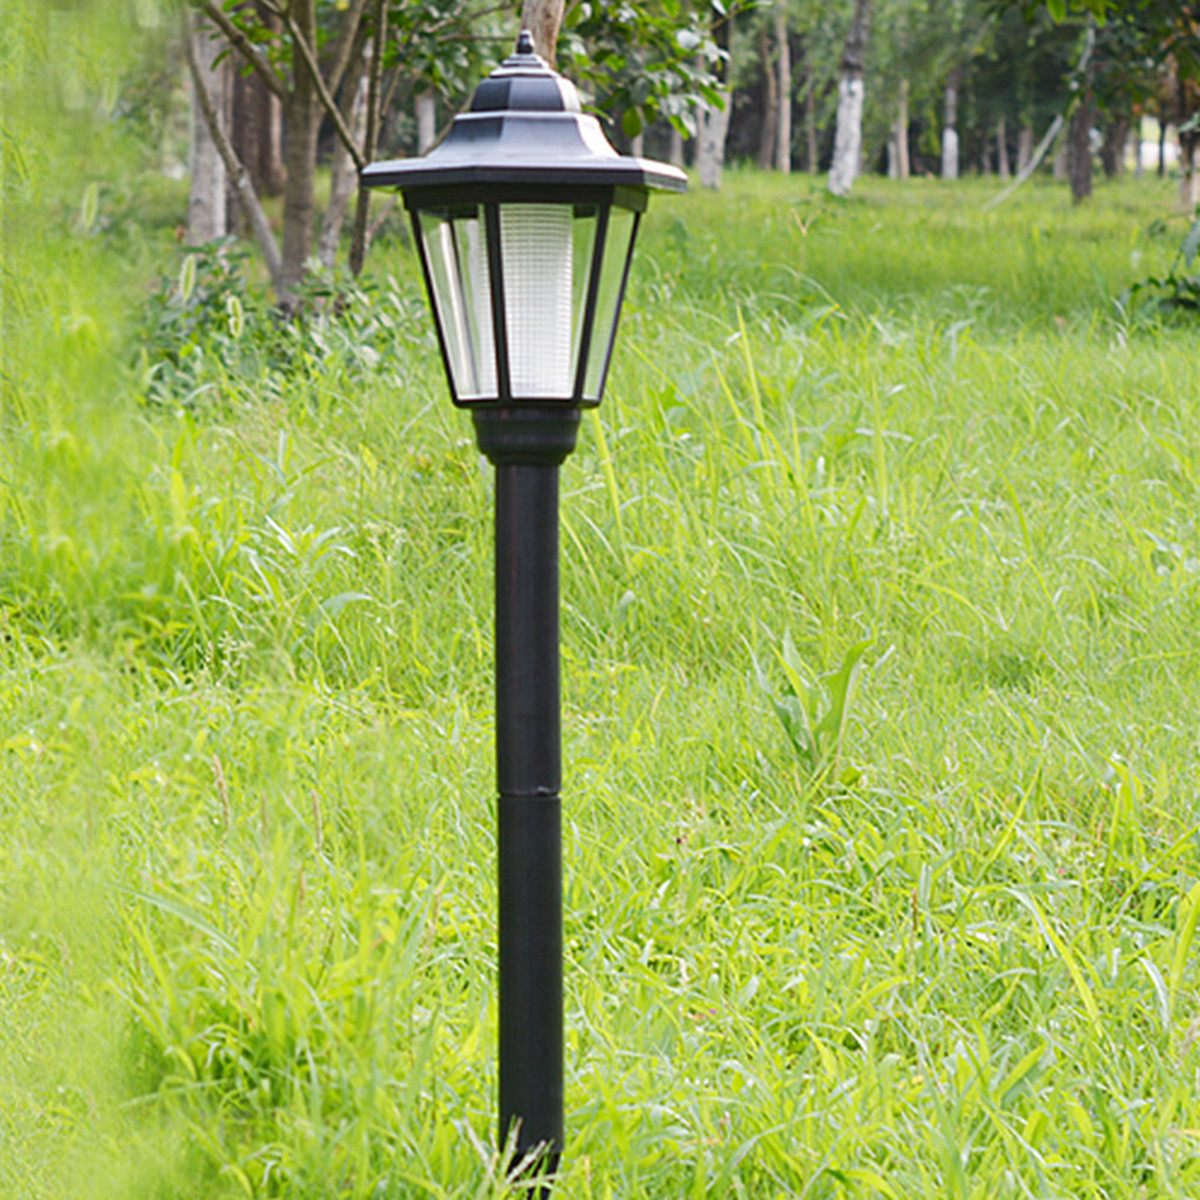 Under Ground LED Solar Lamp Light Lawn Lamp Post Outdoor Garden Lanterns Pillar Yard Garden Decoration Lighting White Light 1pc solar garden light stone pillar white led solar light outdoor garden solar light lawn lamp court yard decoration lamp